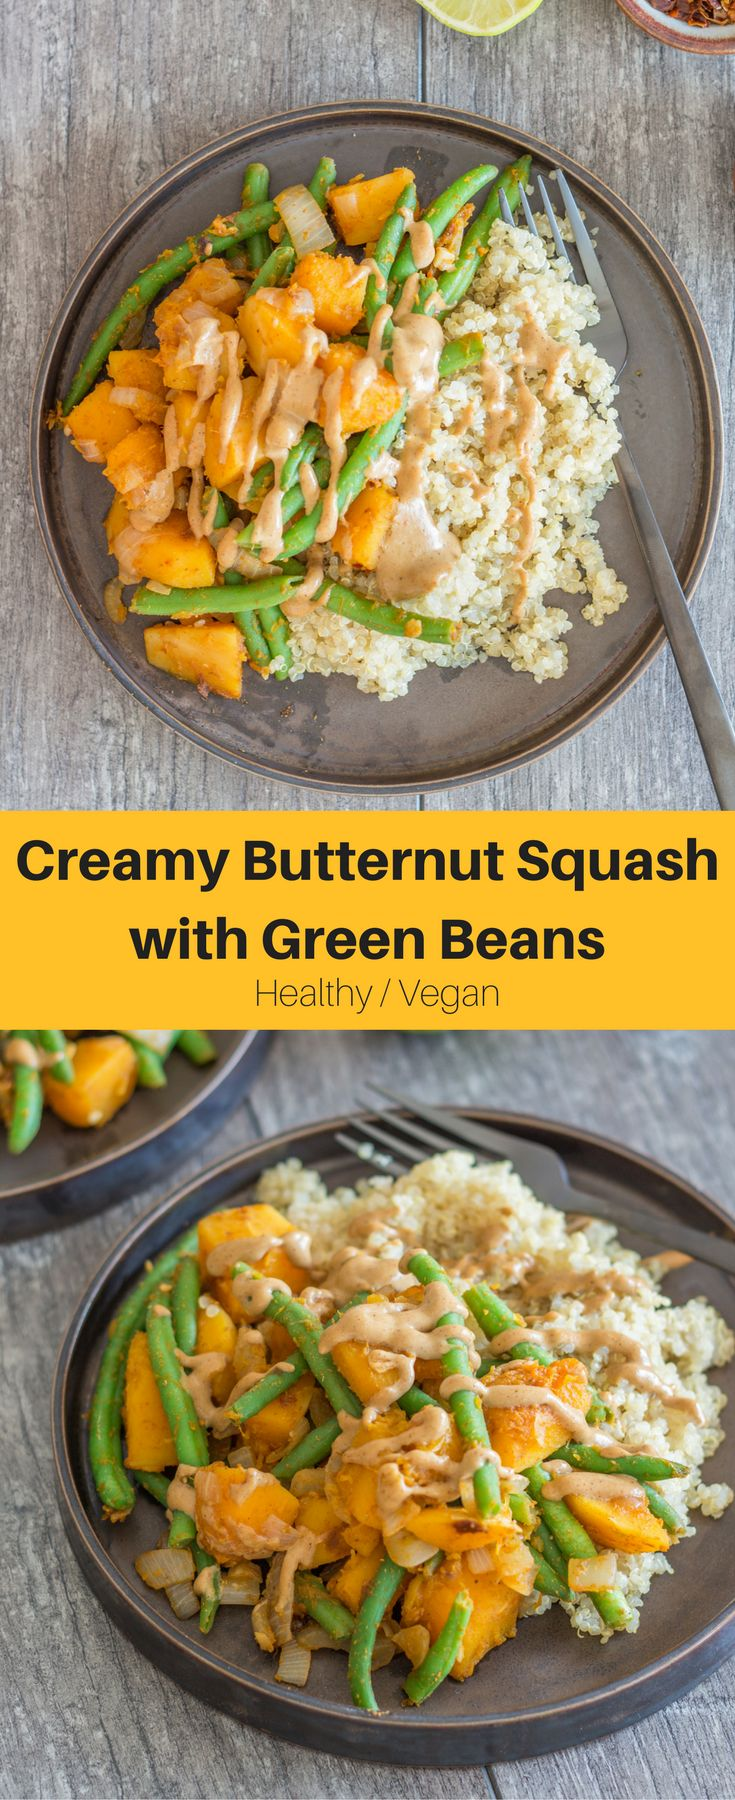 Creamy Butternut Squash with Green Beans and a delicious tahini dressing. A hearty, creamy, flavourful, and super delicious plant-based dinner or lunch.